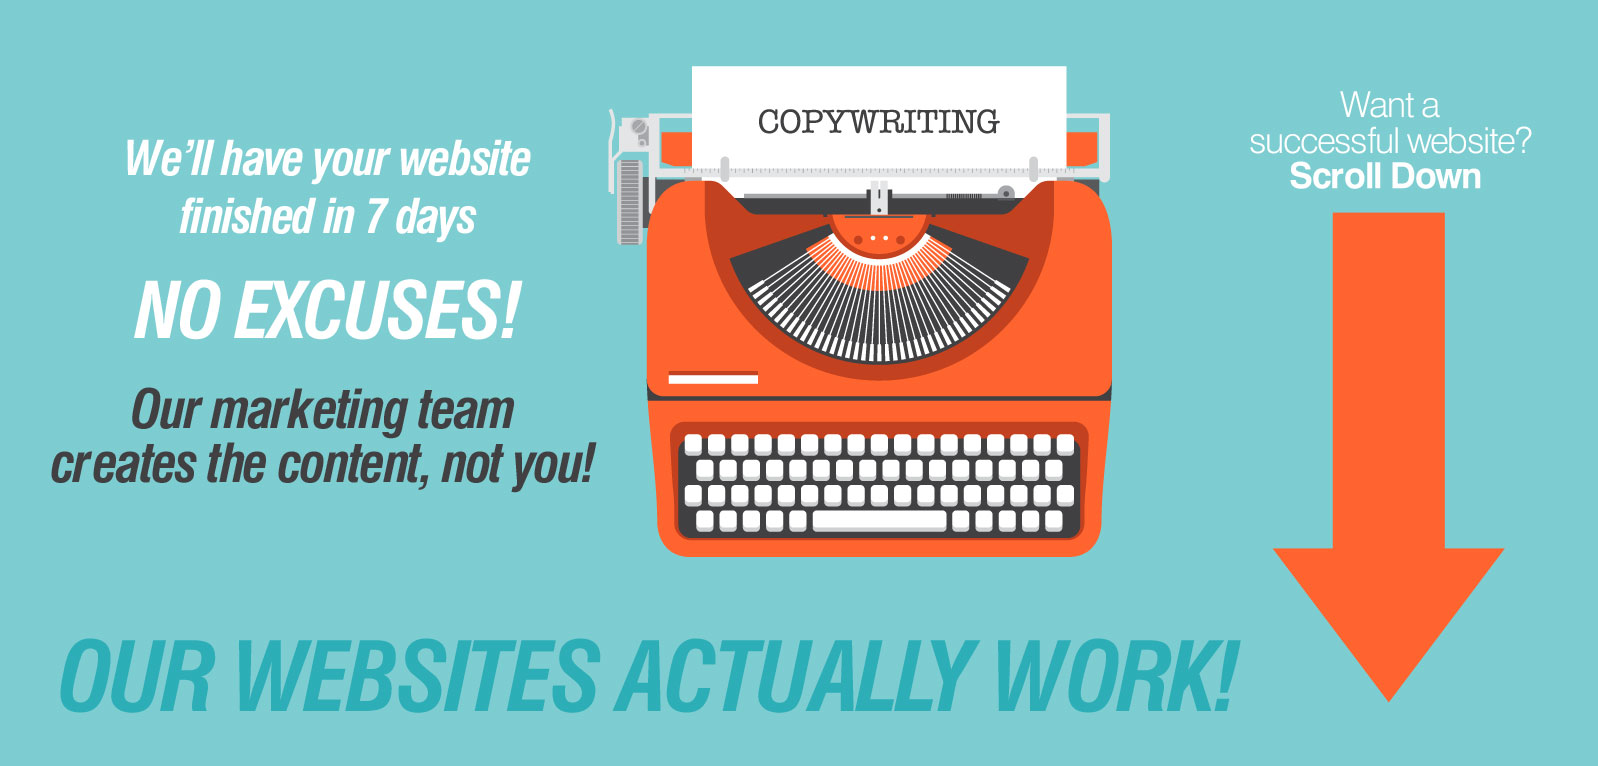 copywriting service Too busy to do the research & writing but need copy by yesterday our copyrighting service will research & write great brochures, leaflets & newsletters.